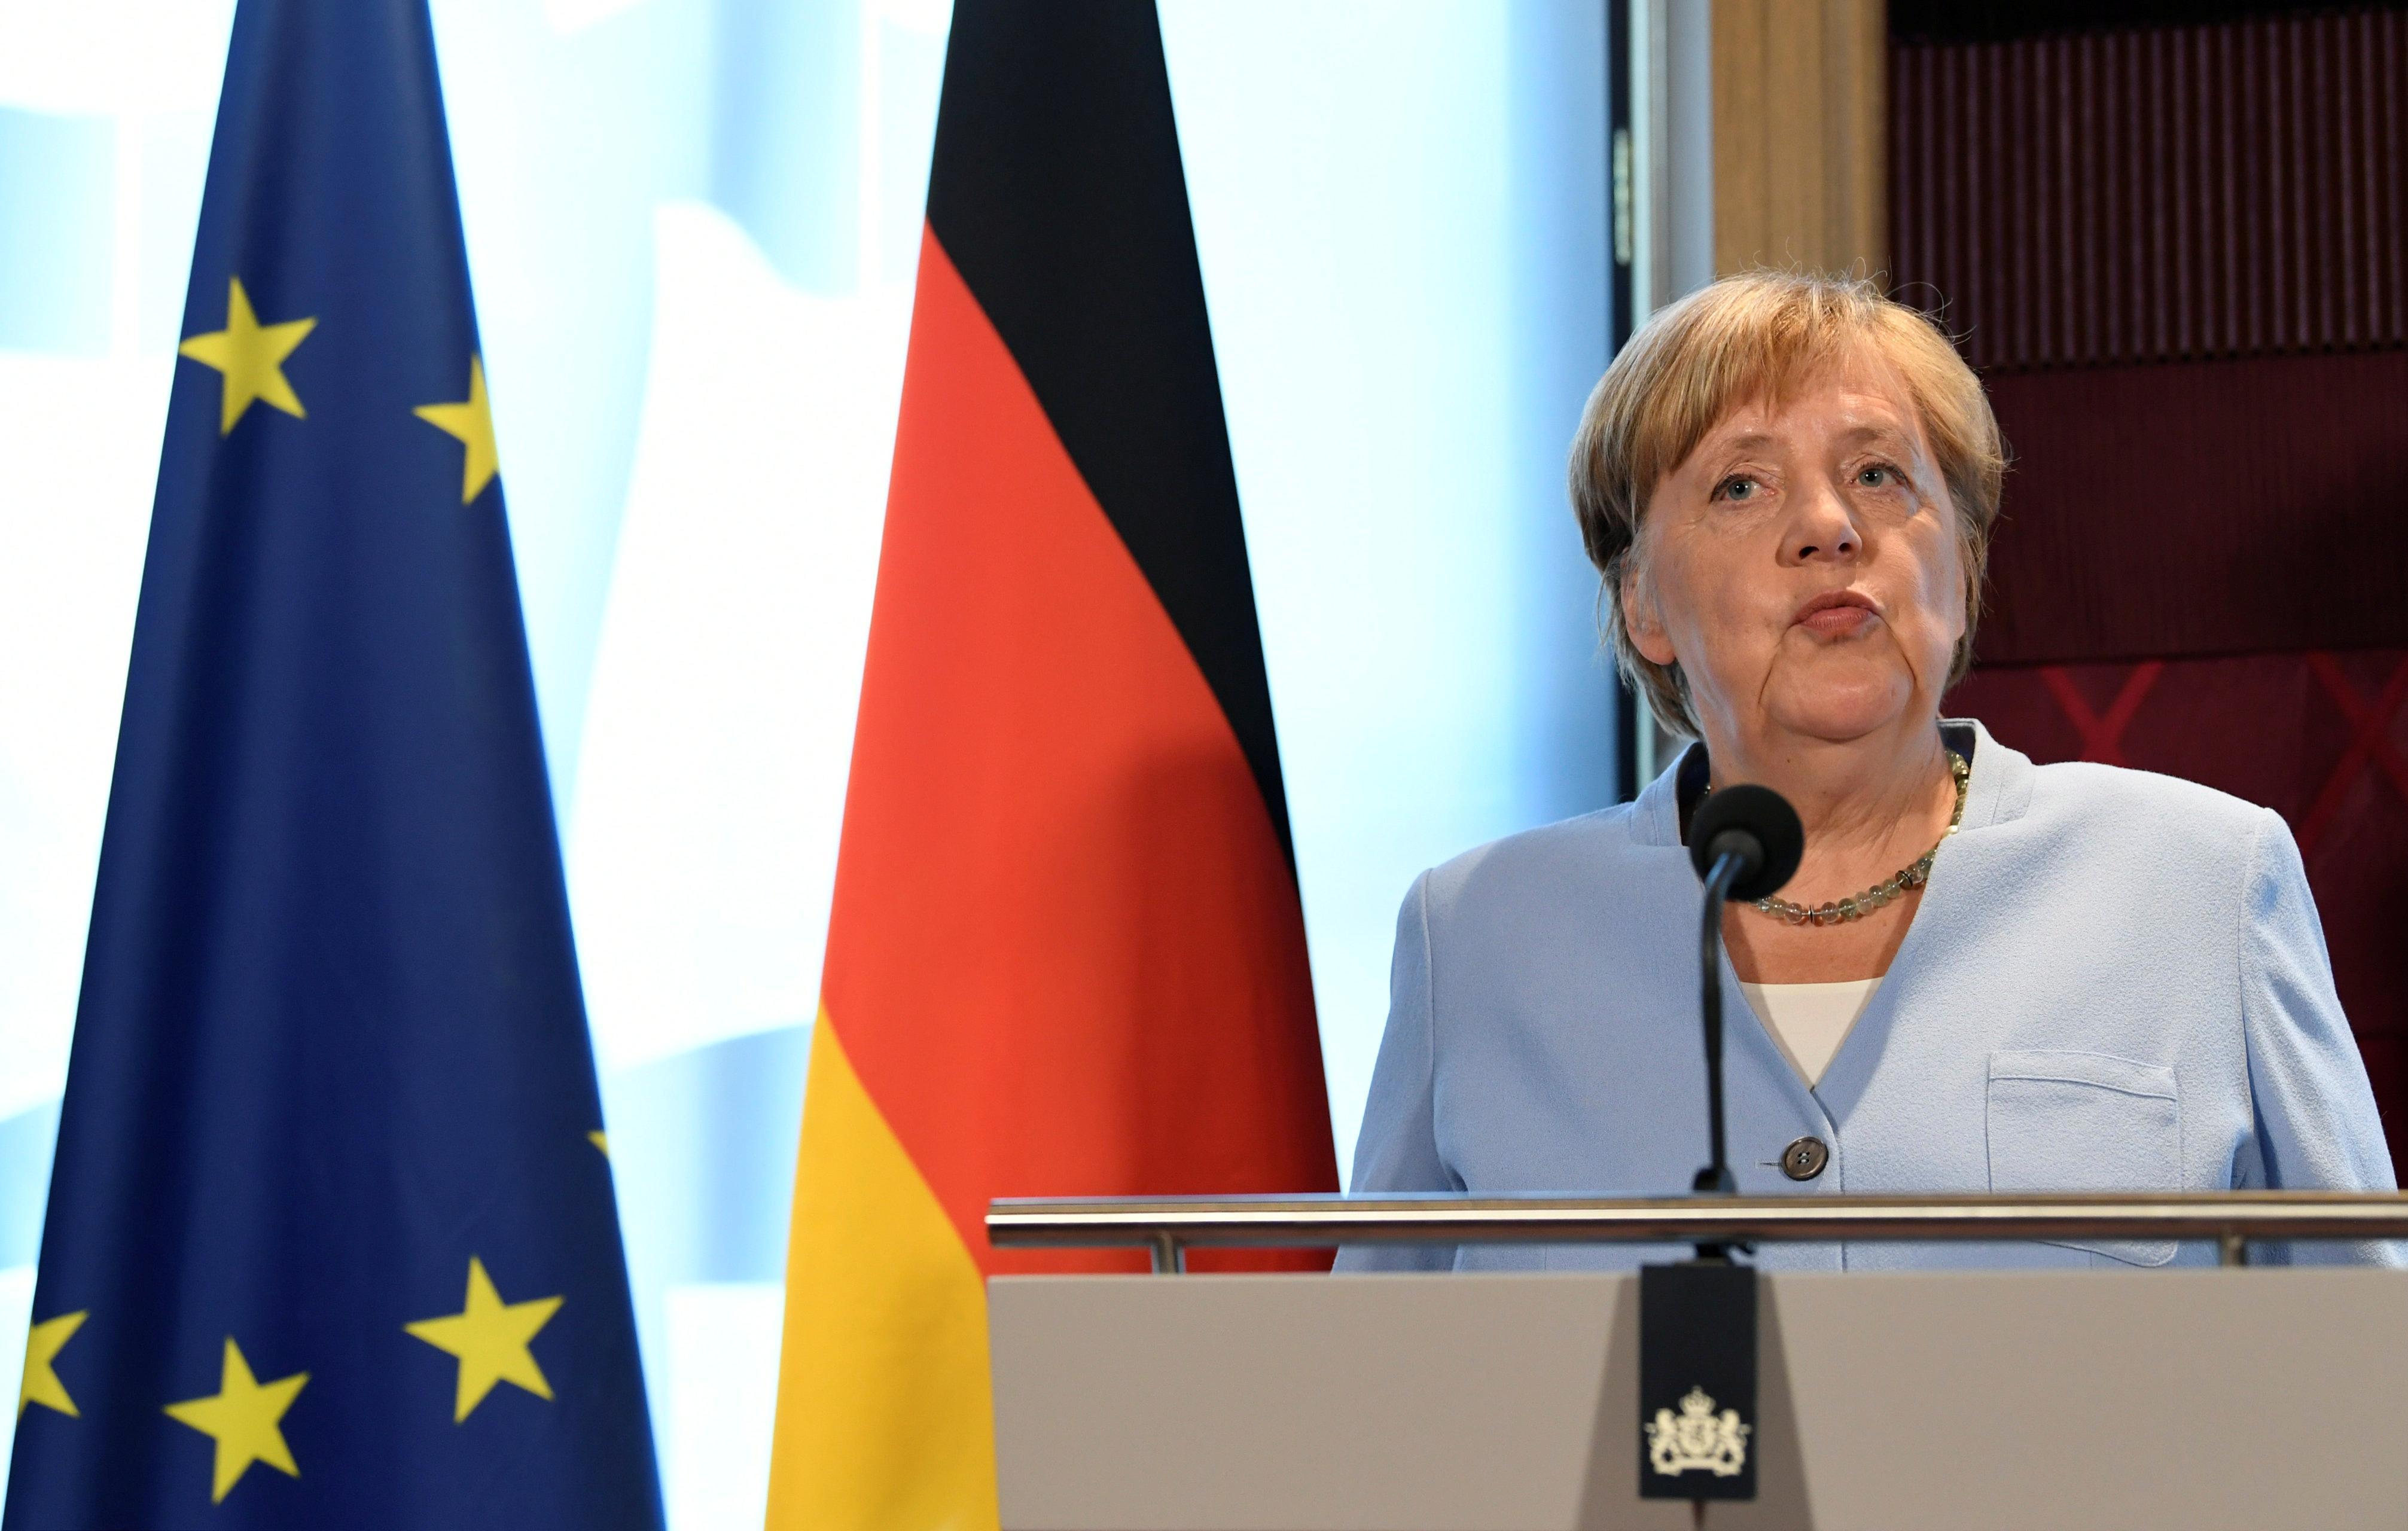 Merkel - '30 days' Brexit remarks were meant to highlight urgency